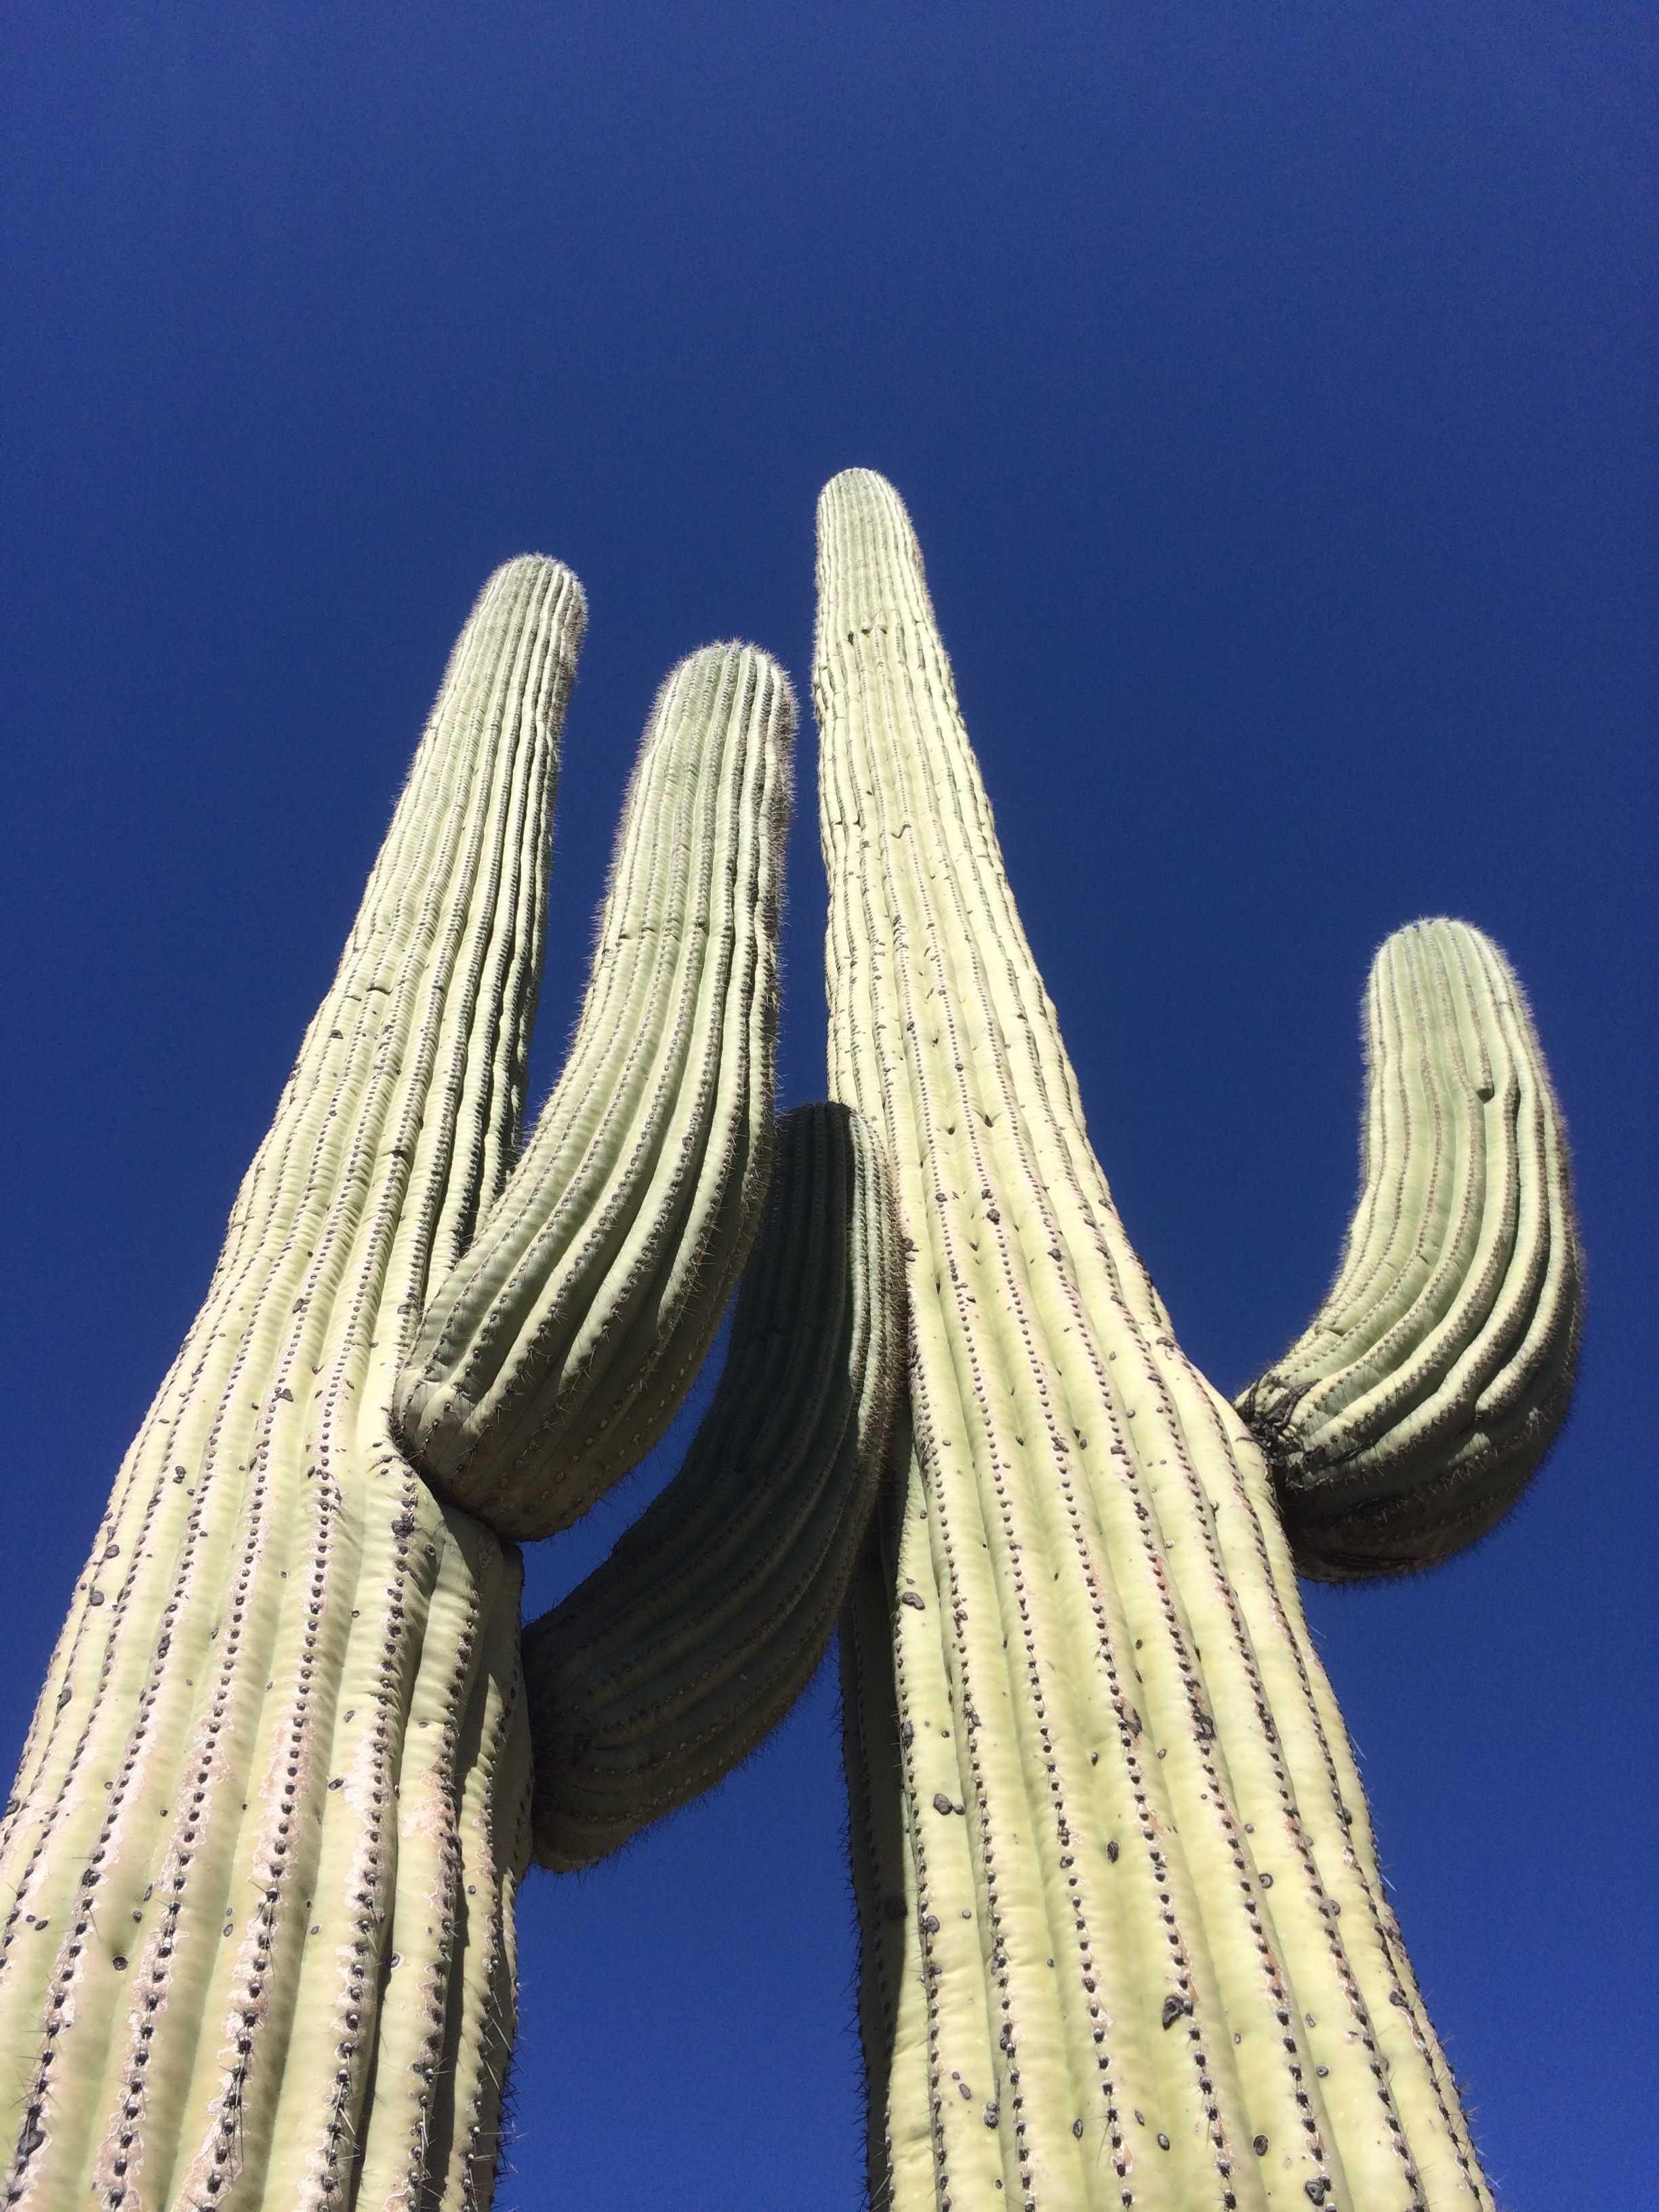 Saguaros can weigh up to 8 tons!